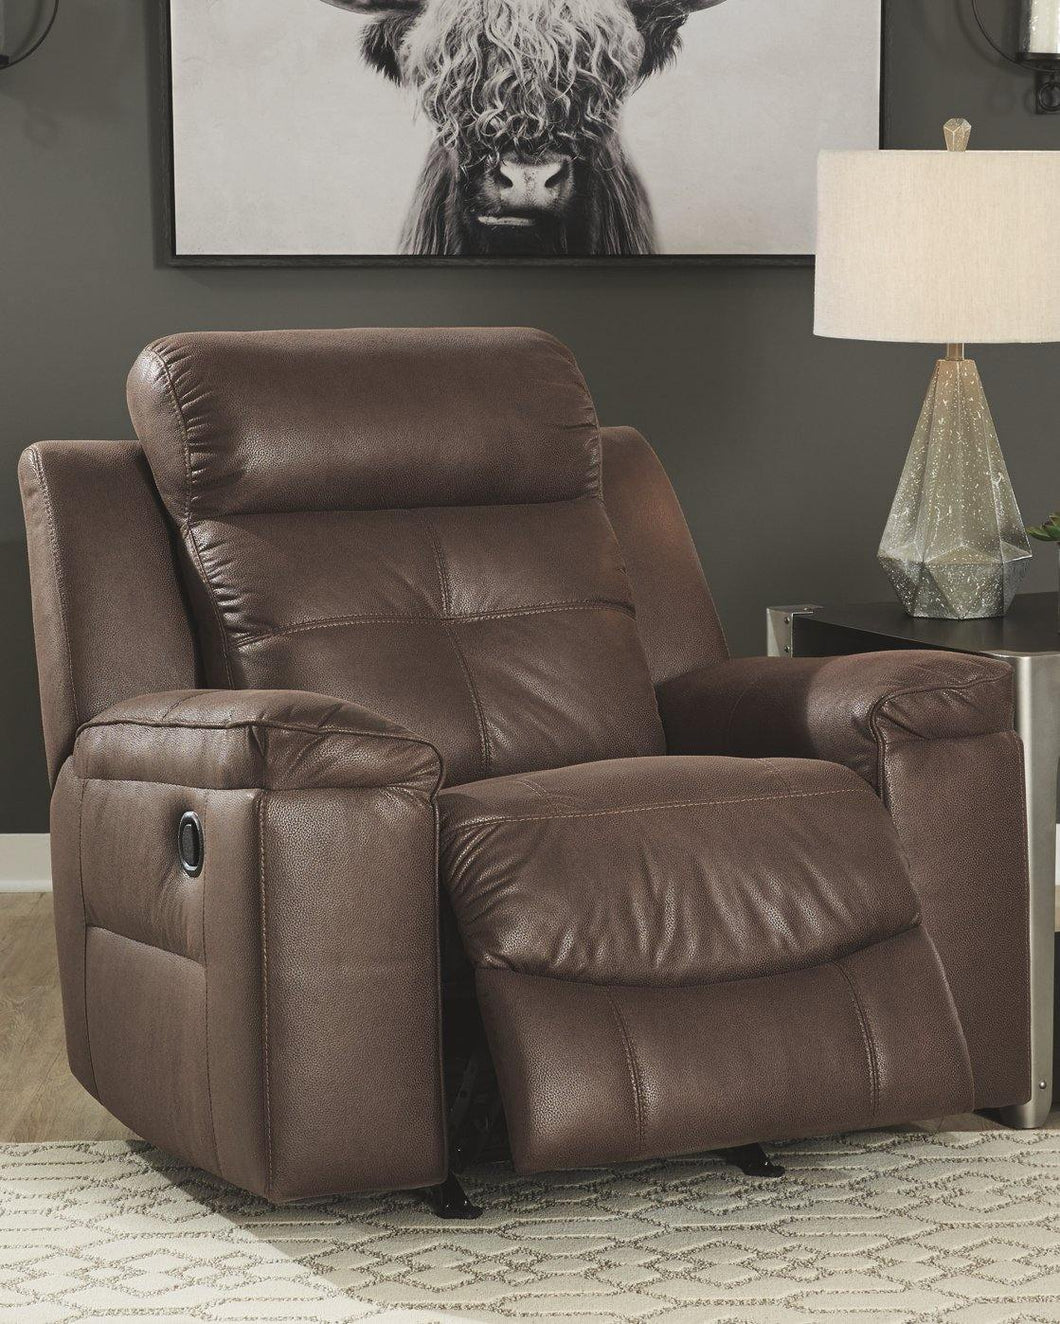 Jesolo Recliner 8670425 By Ashley Furniture from sofafair